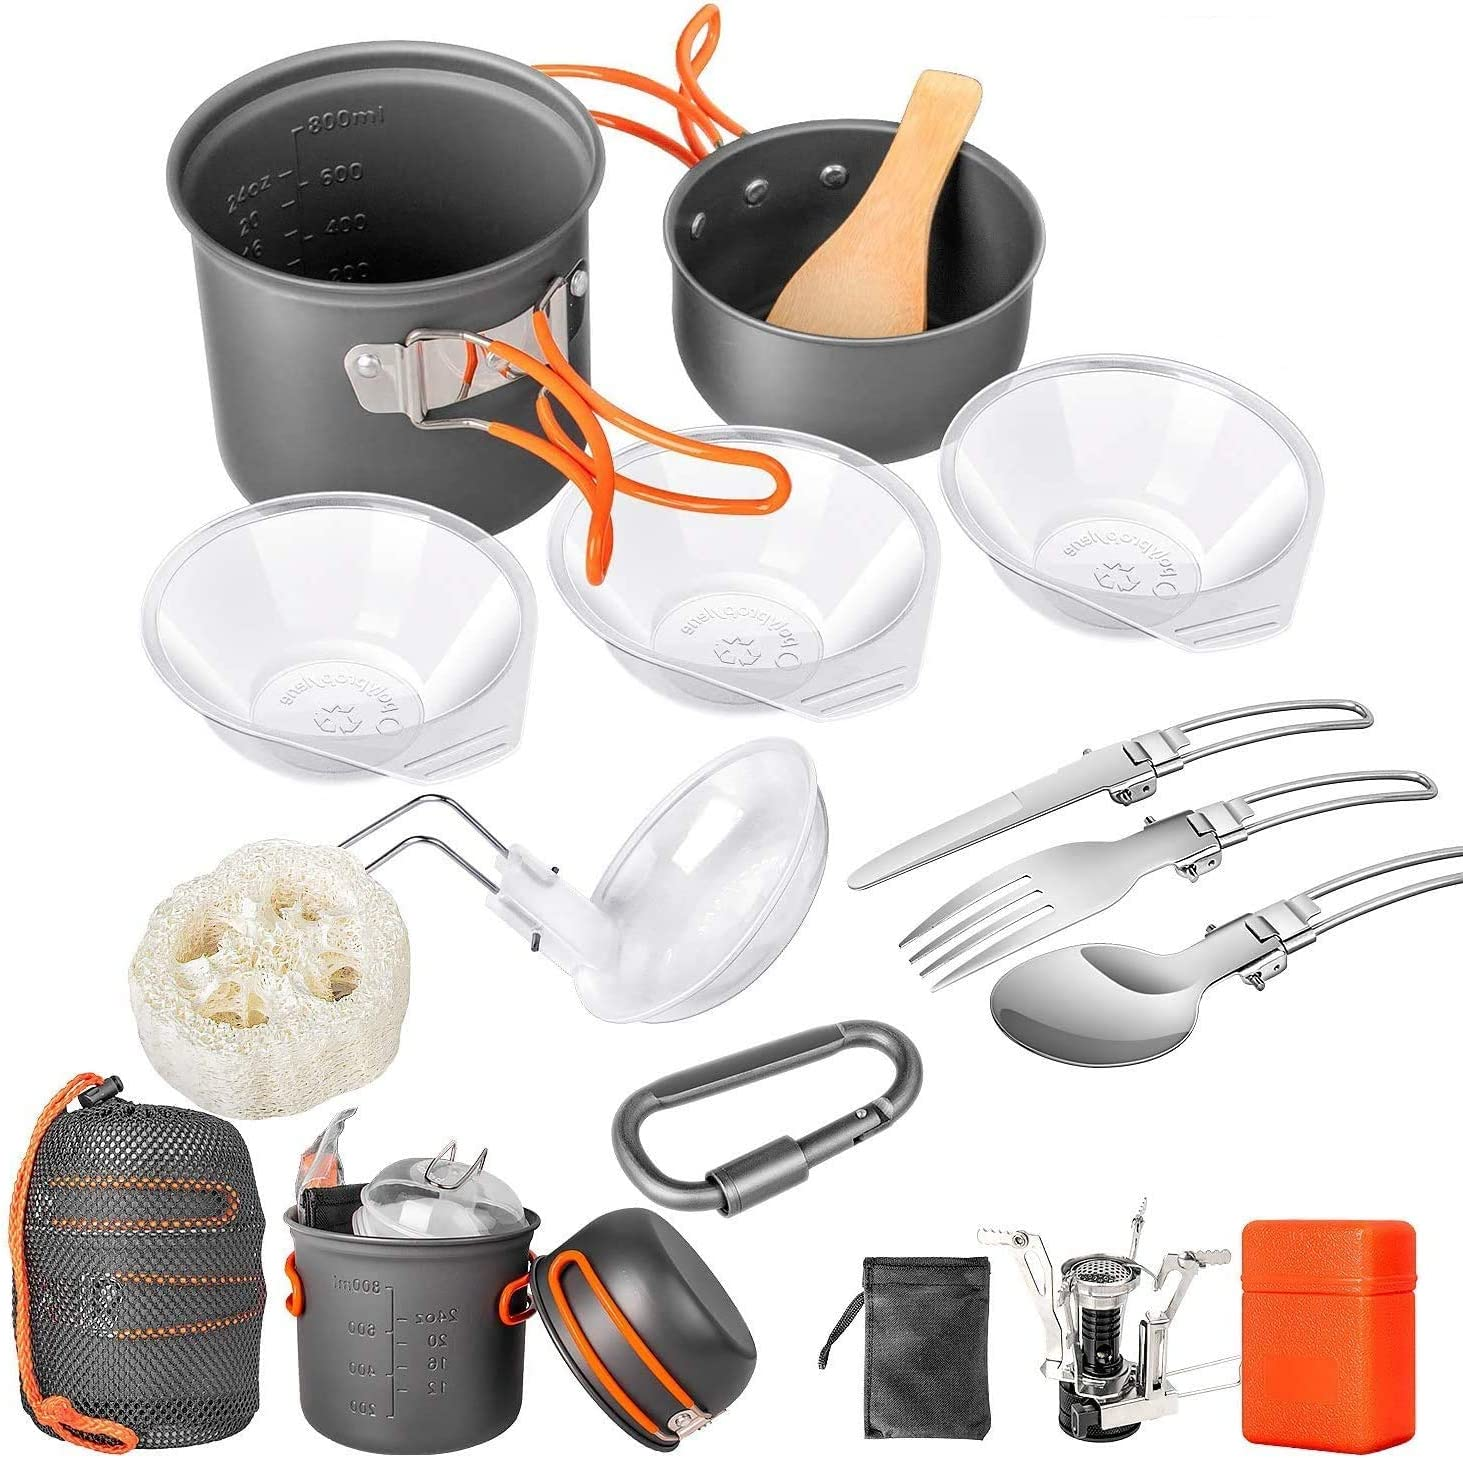 Limechoes Trust Camping Cookware Set 16 and Pots Pans NEW before selling Pcs